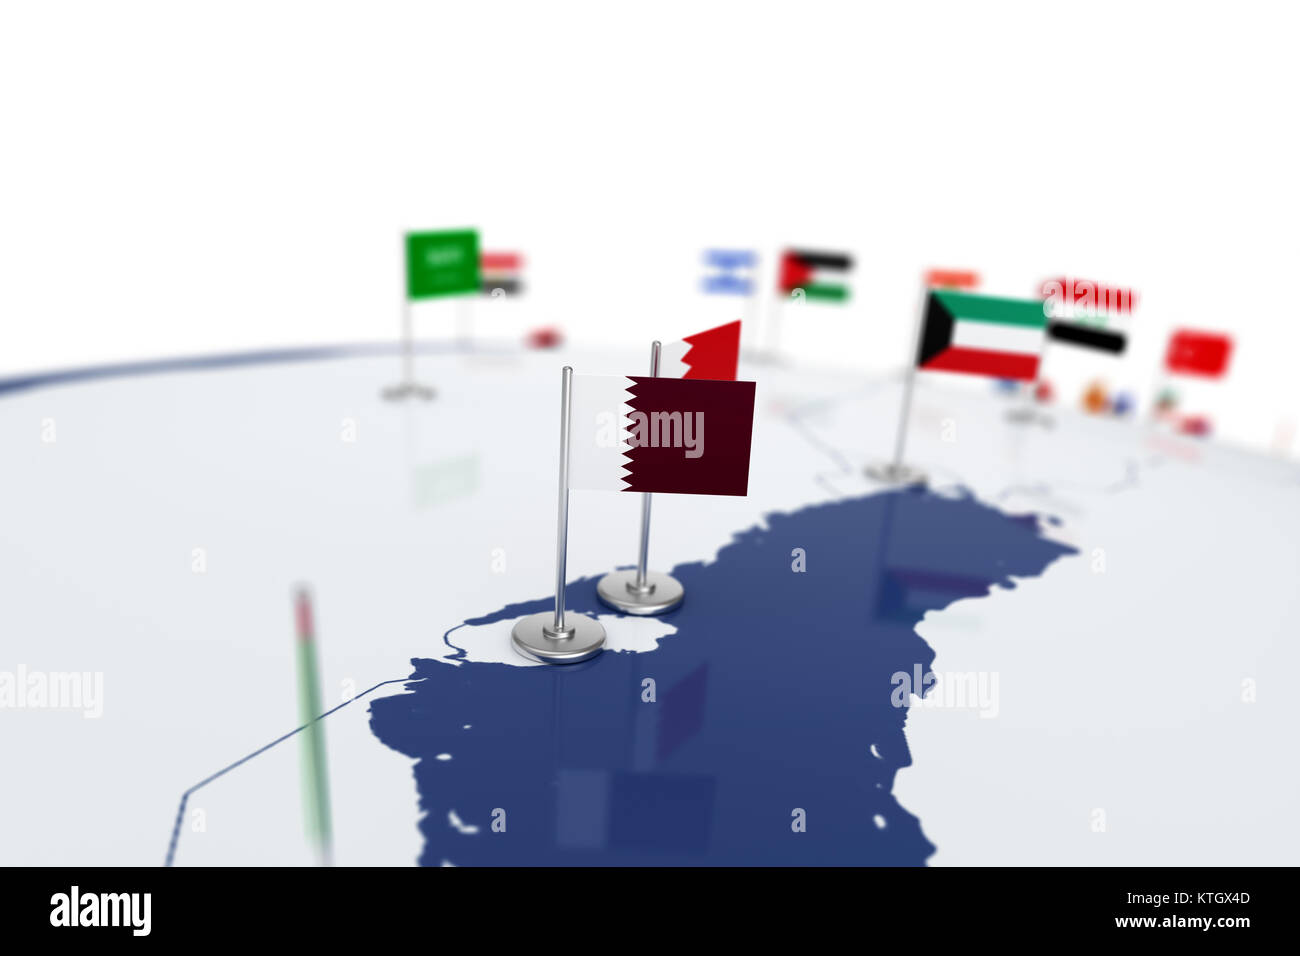 Qatar flag. Country flag with chrome flagpole on the world ... on world map uae, world map in bangladesh, world map in norway, world map in chile, world map in nigeria, world map in china, world map kuwait, world map in arabic, world map in sri lanka, world map iraq, world map in france, world map in austria, world map jordan, world map in russia, world map in england, world map bahrain, world map in vietnam, world map doha, world map in english, world map in french,